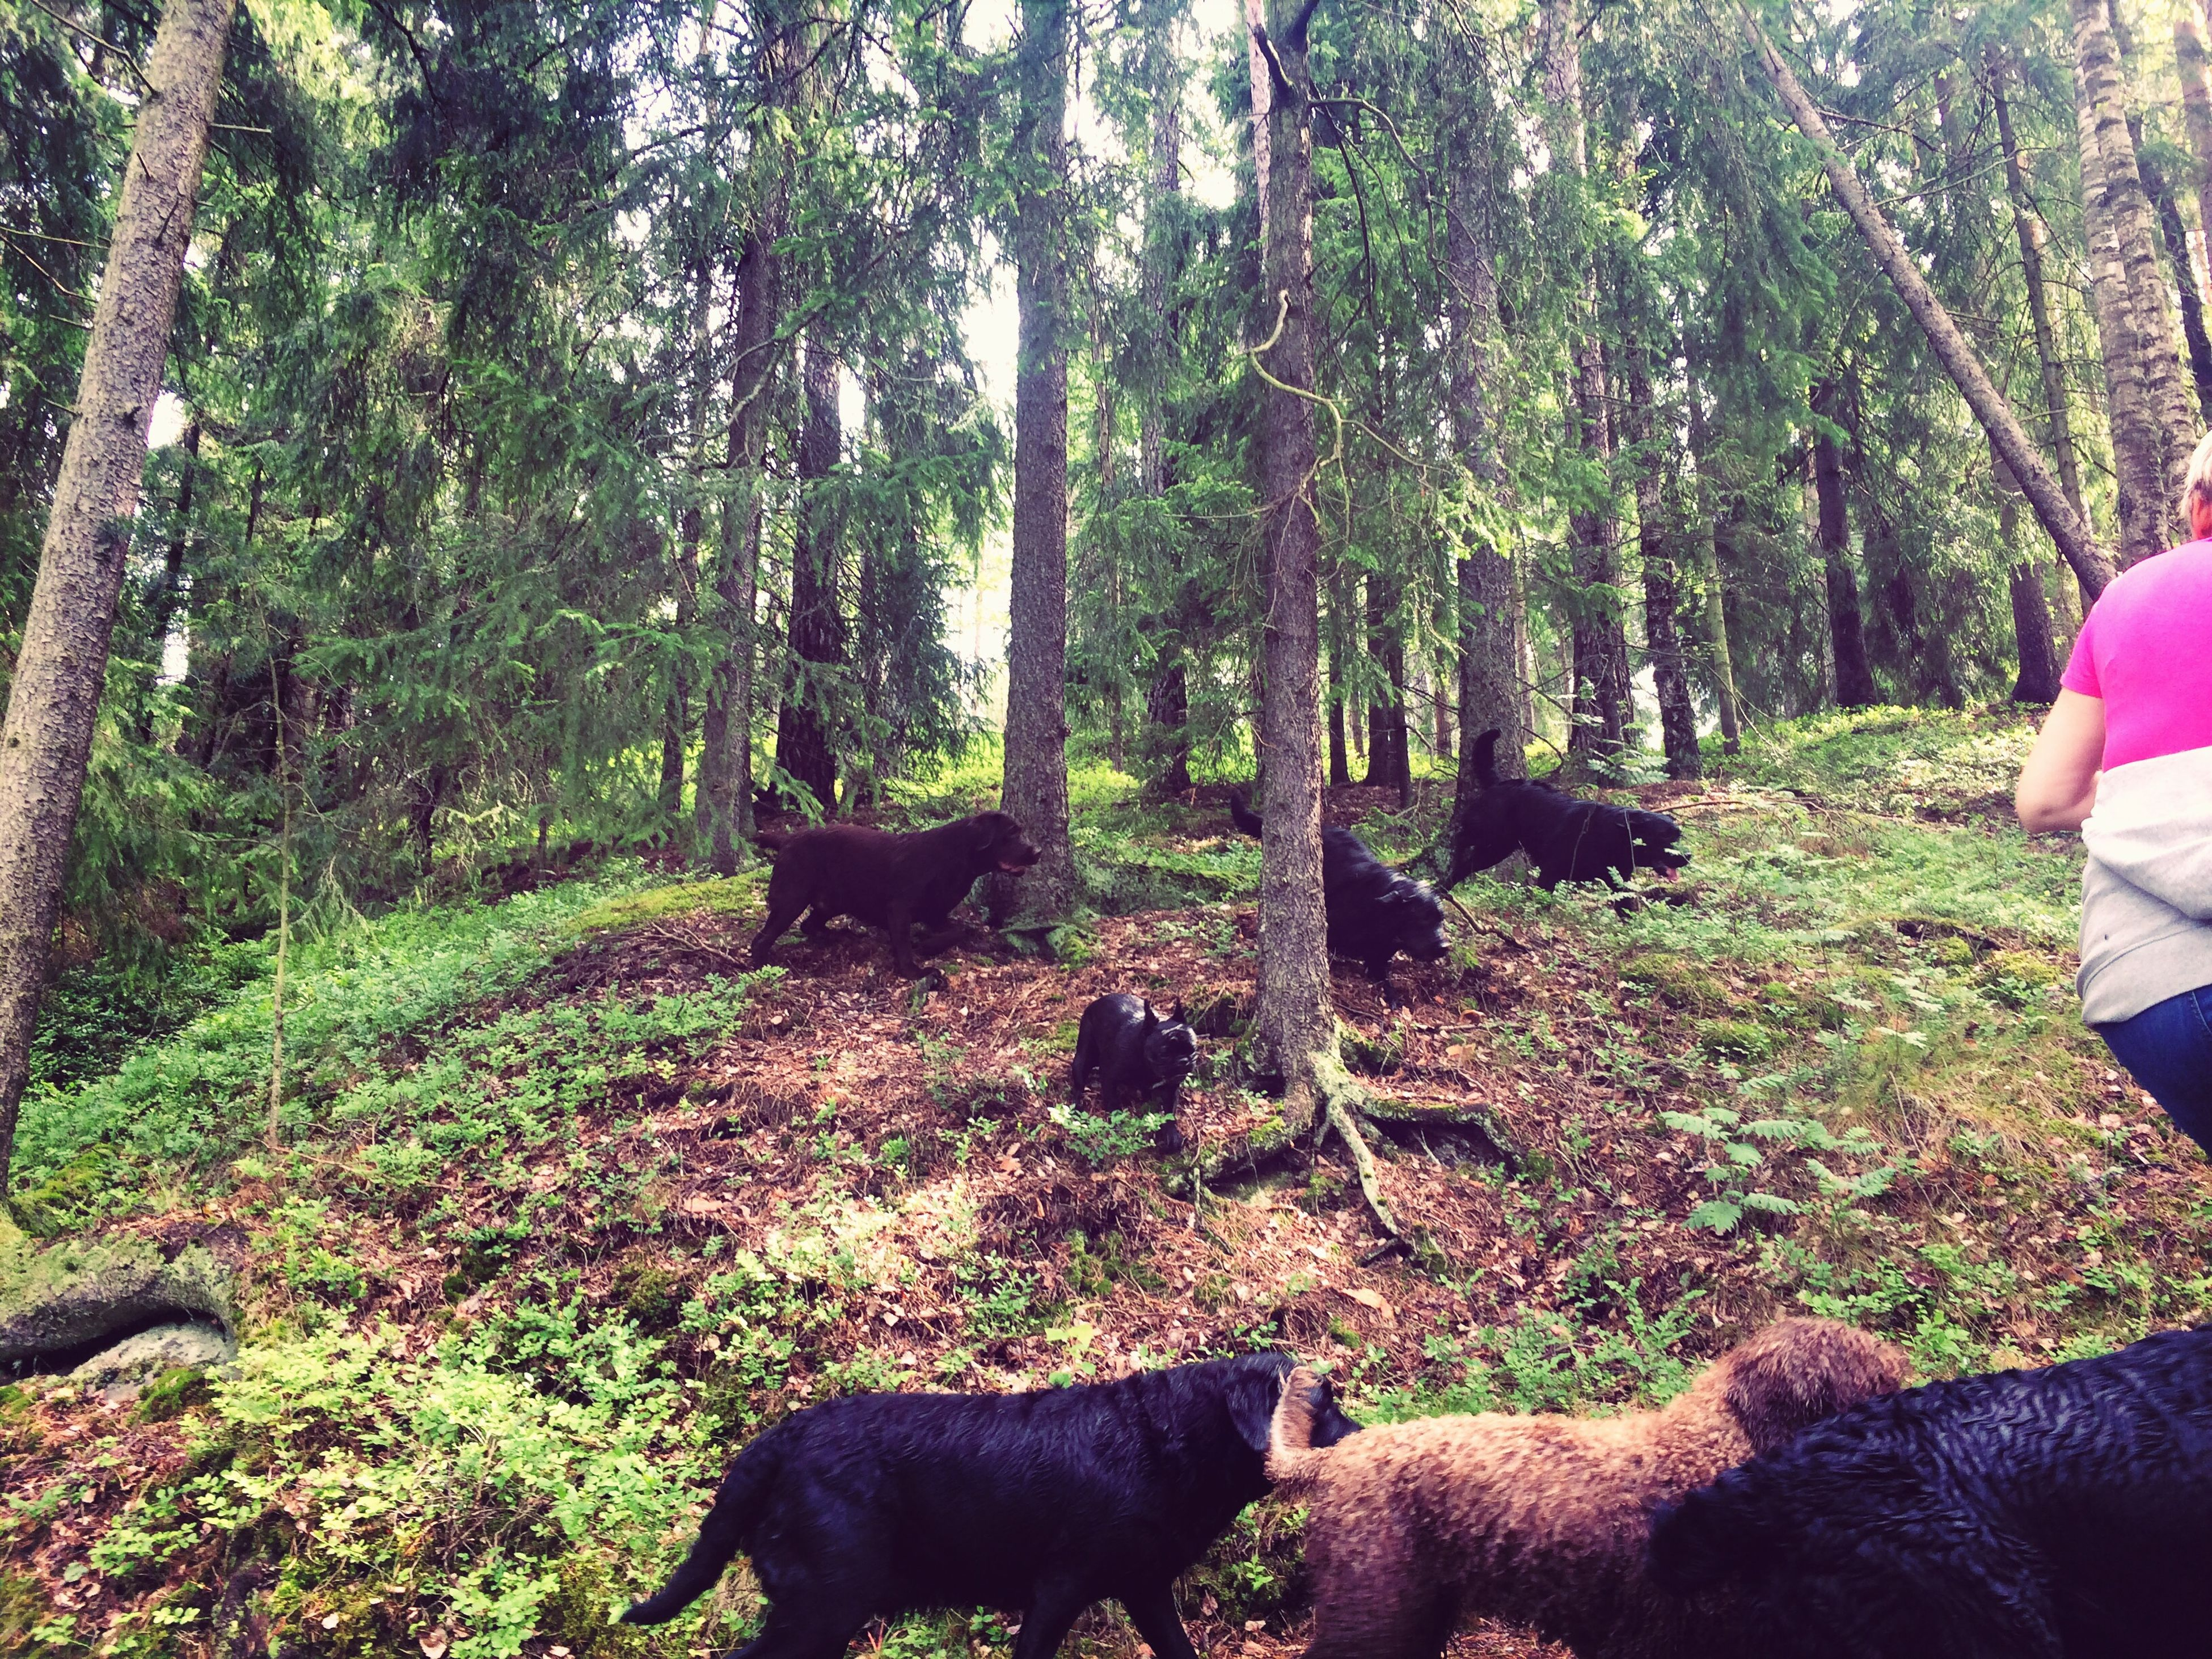 domestic animals, tree, mammal, animal themes, pets, one animal, dog, forest, growth, relaxation, nature, plant, tree trunk, green color, grass, day, standing, sitting